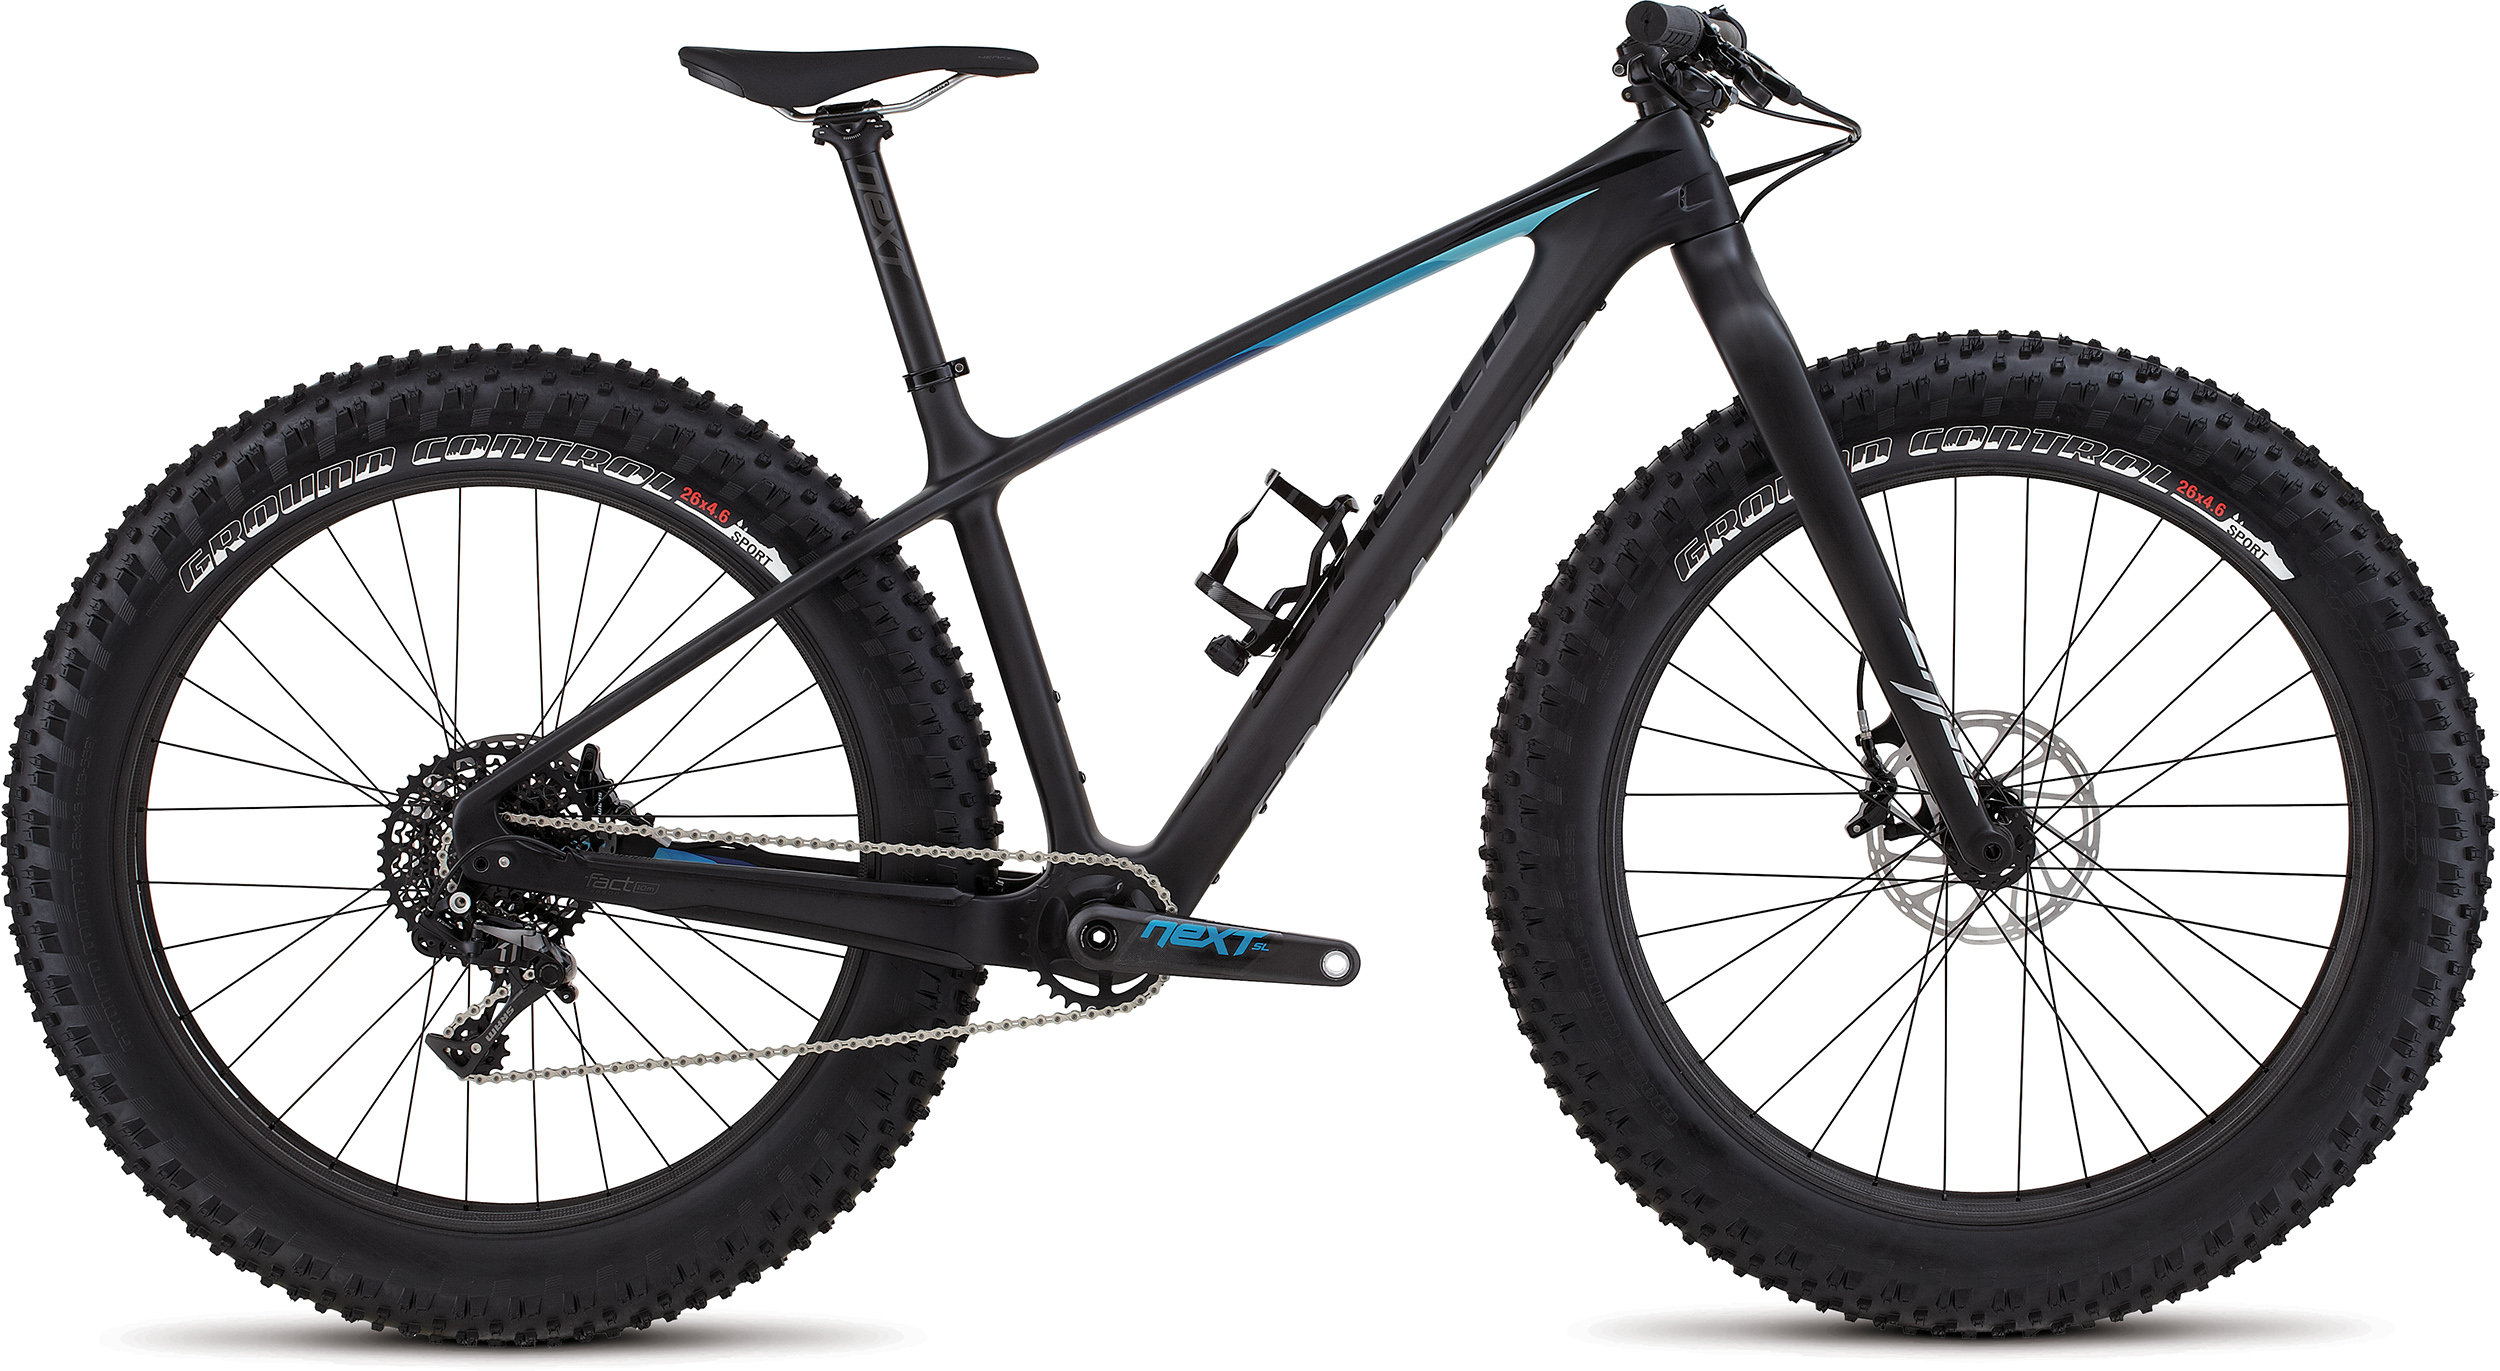 SPECIALIZED FATBOY EXPERT CARBON CARB/BLK/BLU S - Bike Maniac